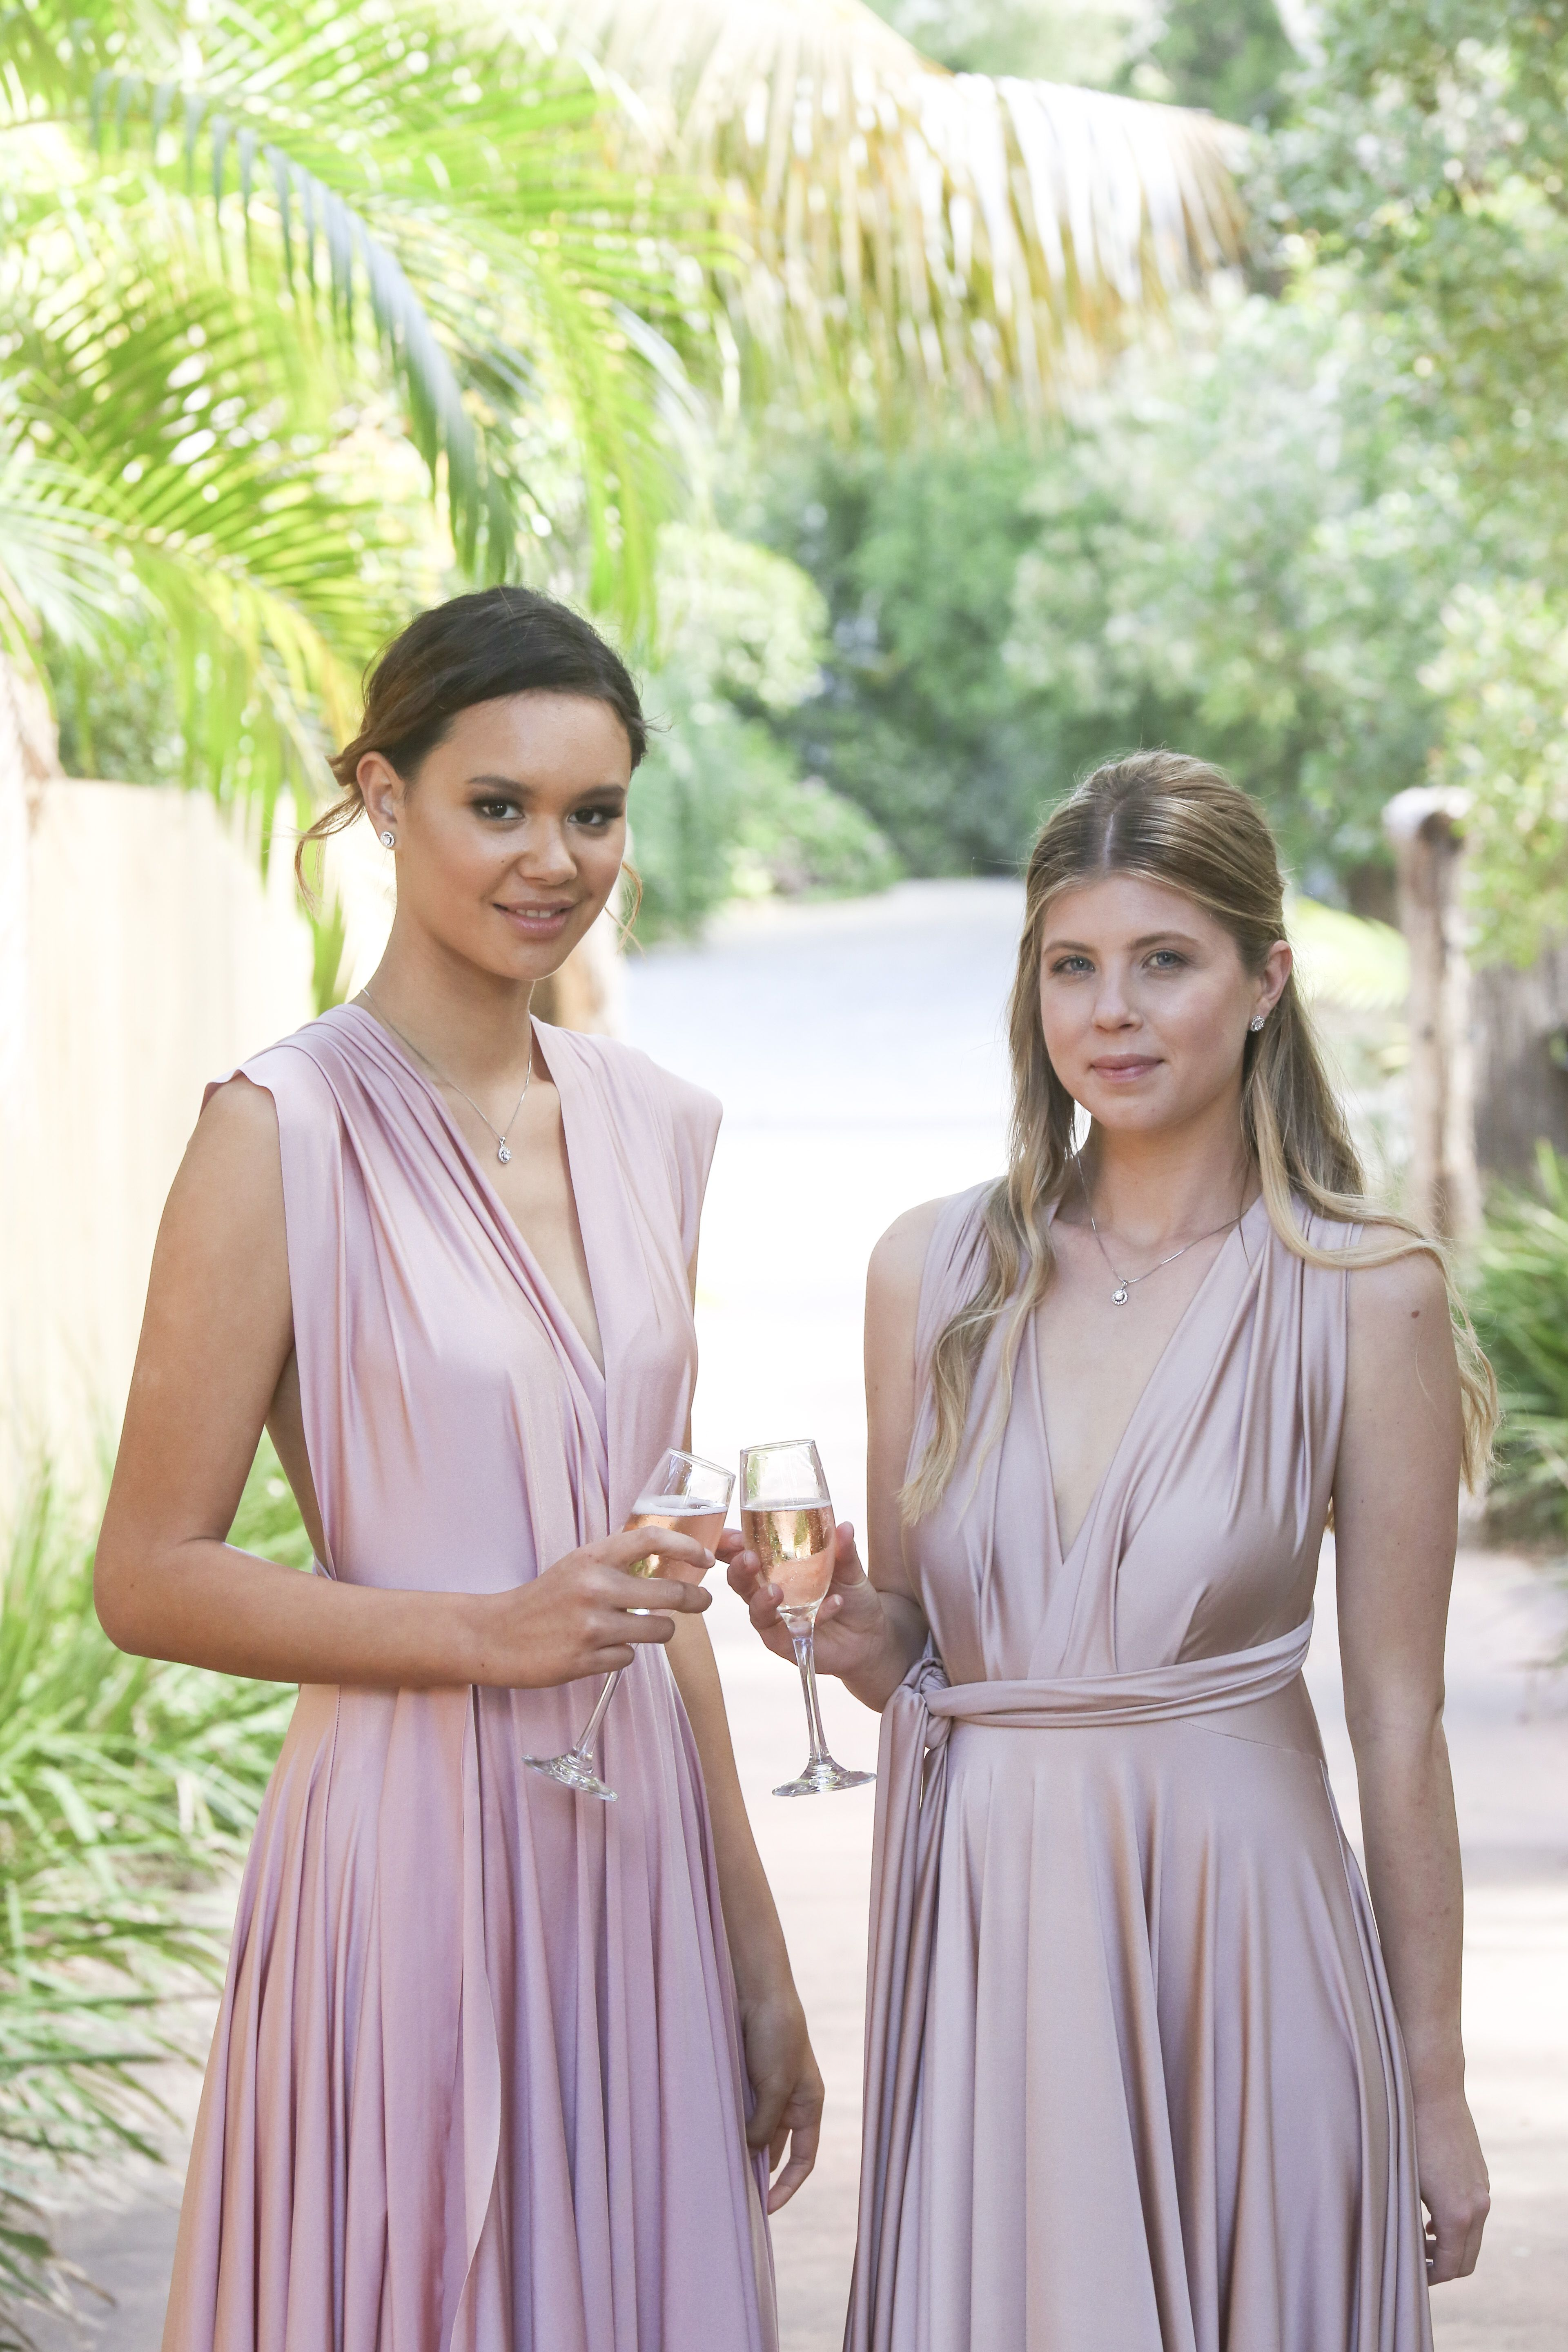 Our flattering signature multiway bridesmaids dresses goddess our flattering signature multiway bridesmaids dresses goddess by nature ombrellifo Images